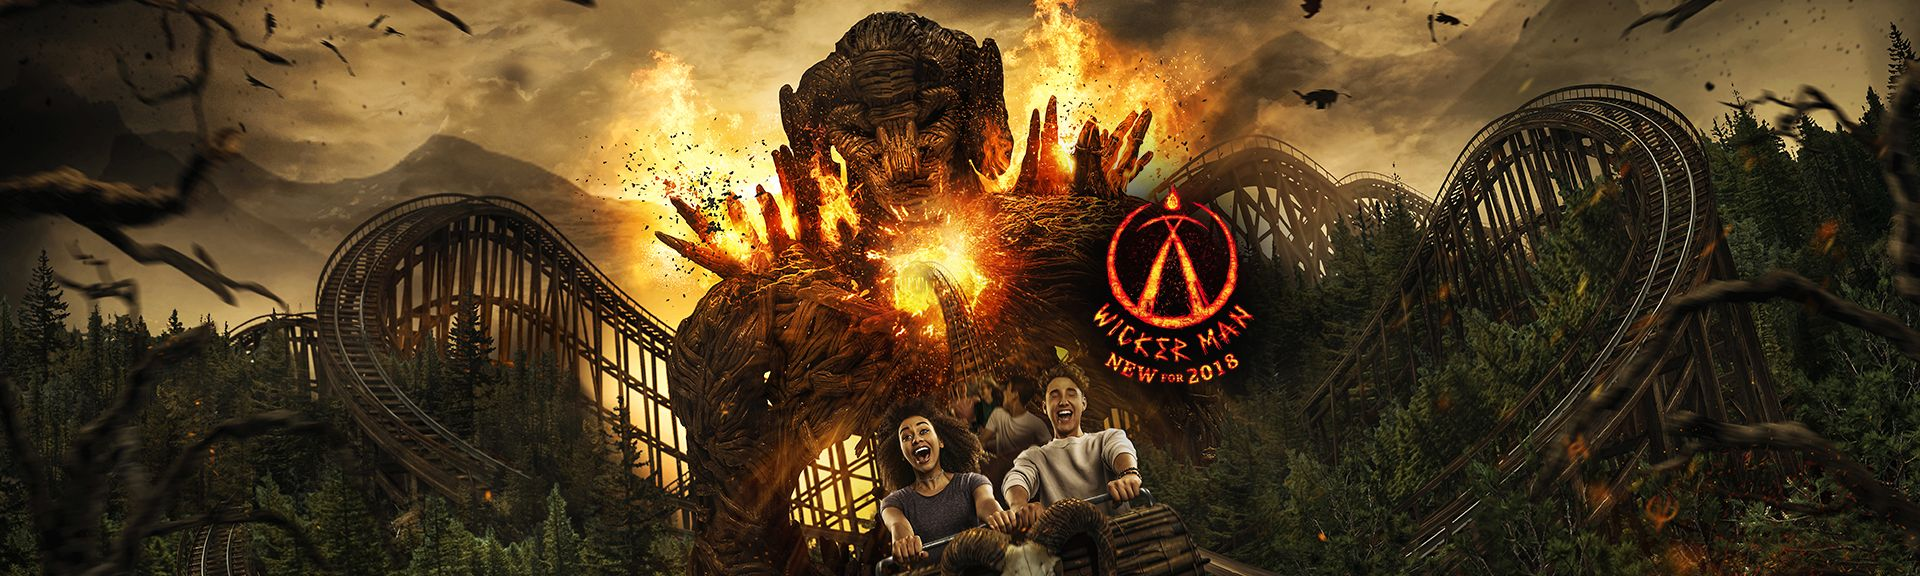 Alton Towers Wicker Man ride